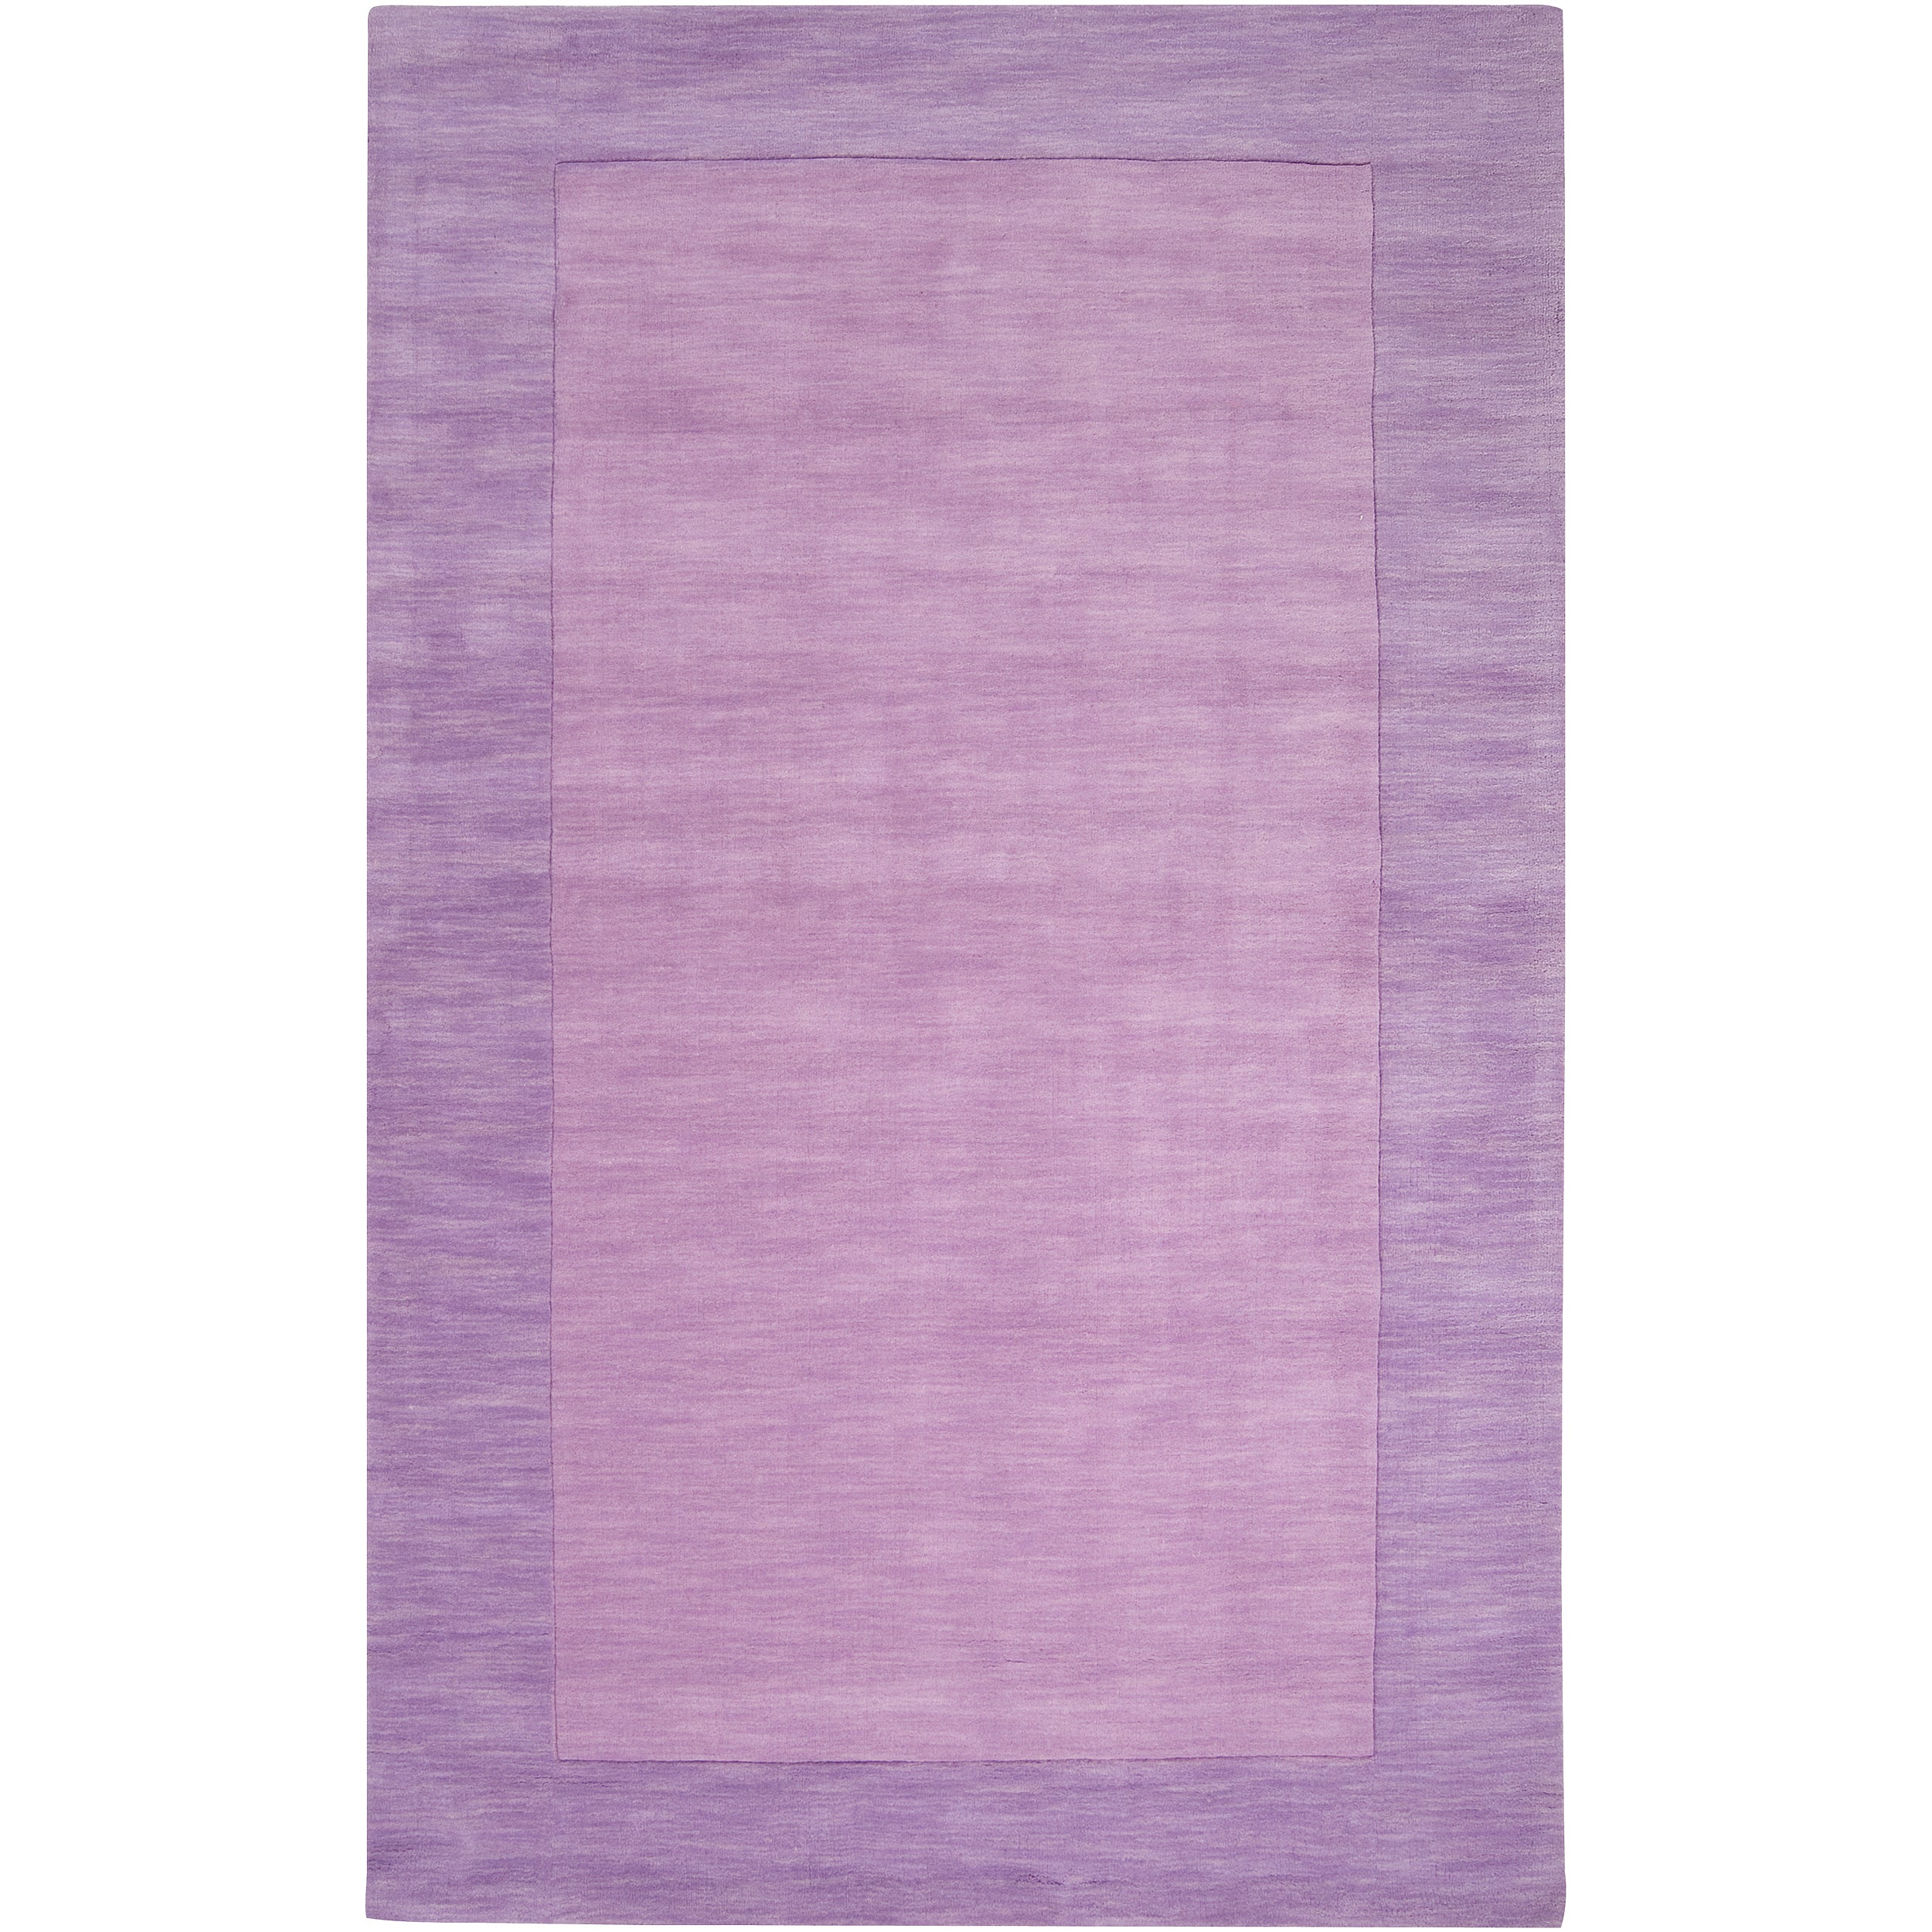 Hand-crafted Purple Tone-On-Tone Bordered Emeto Wool Rug (9' x 13')